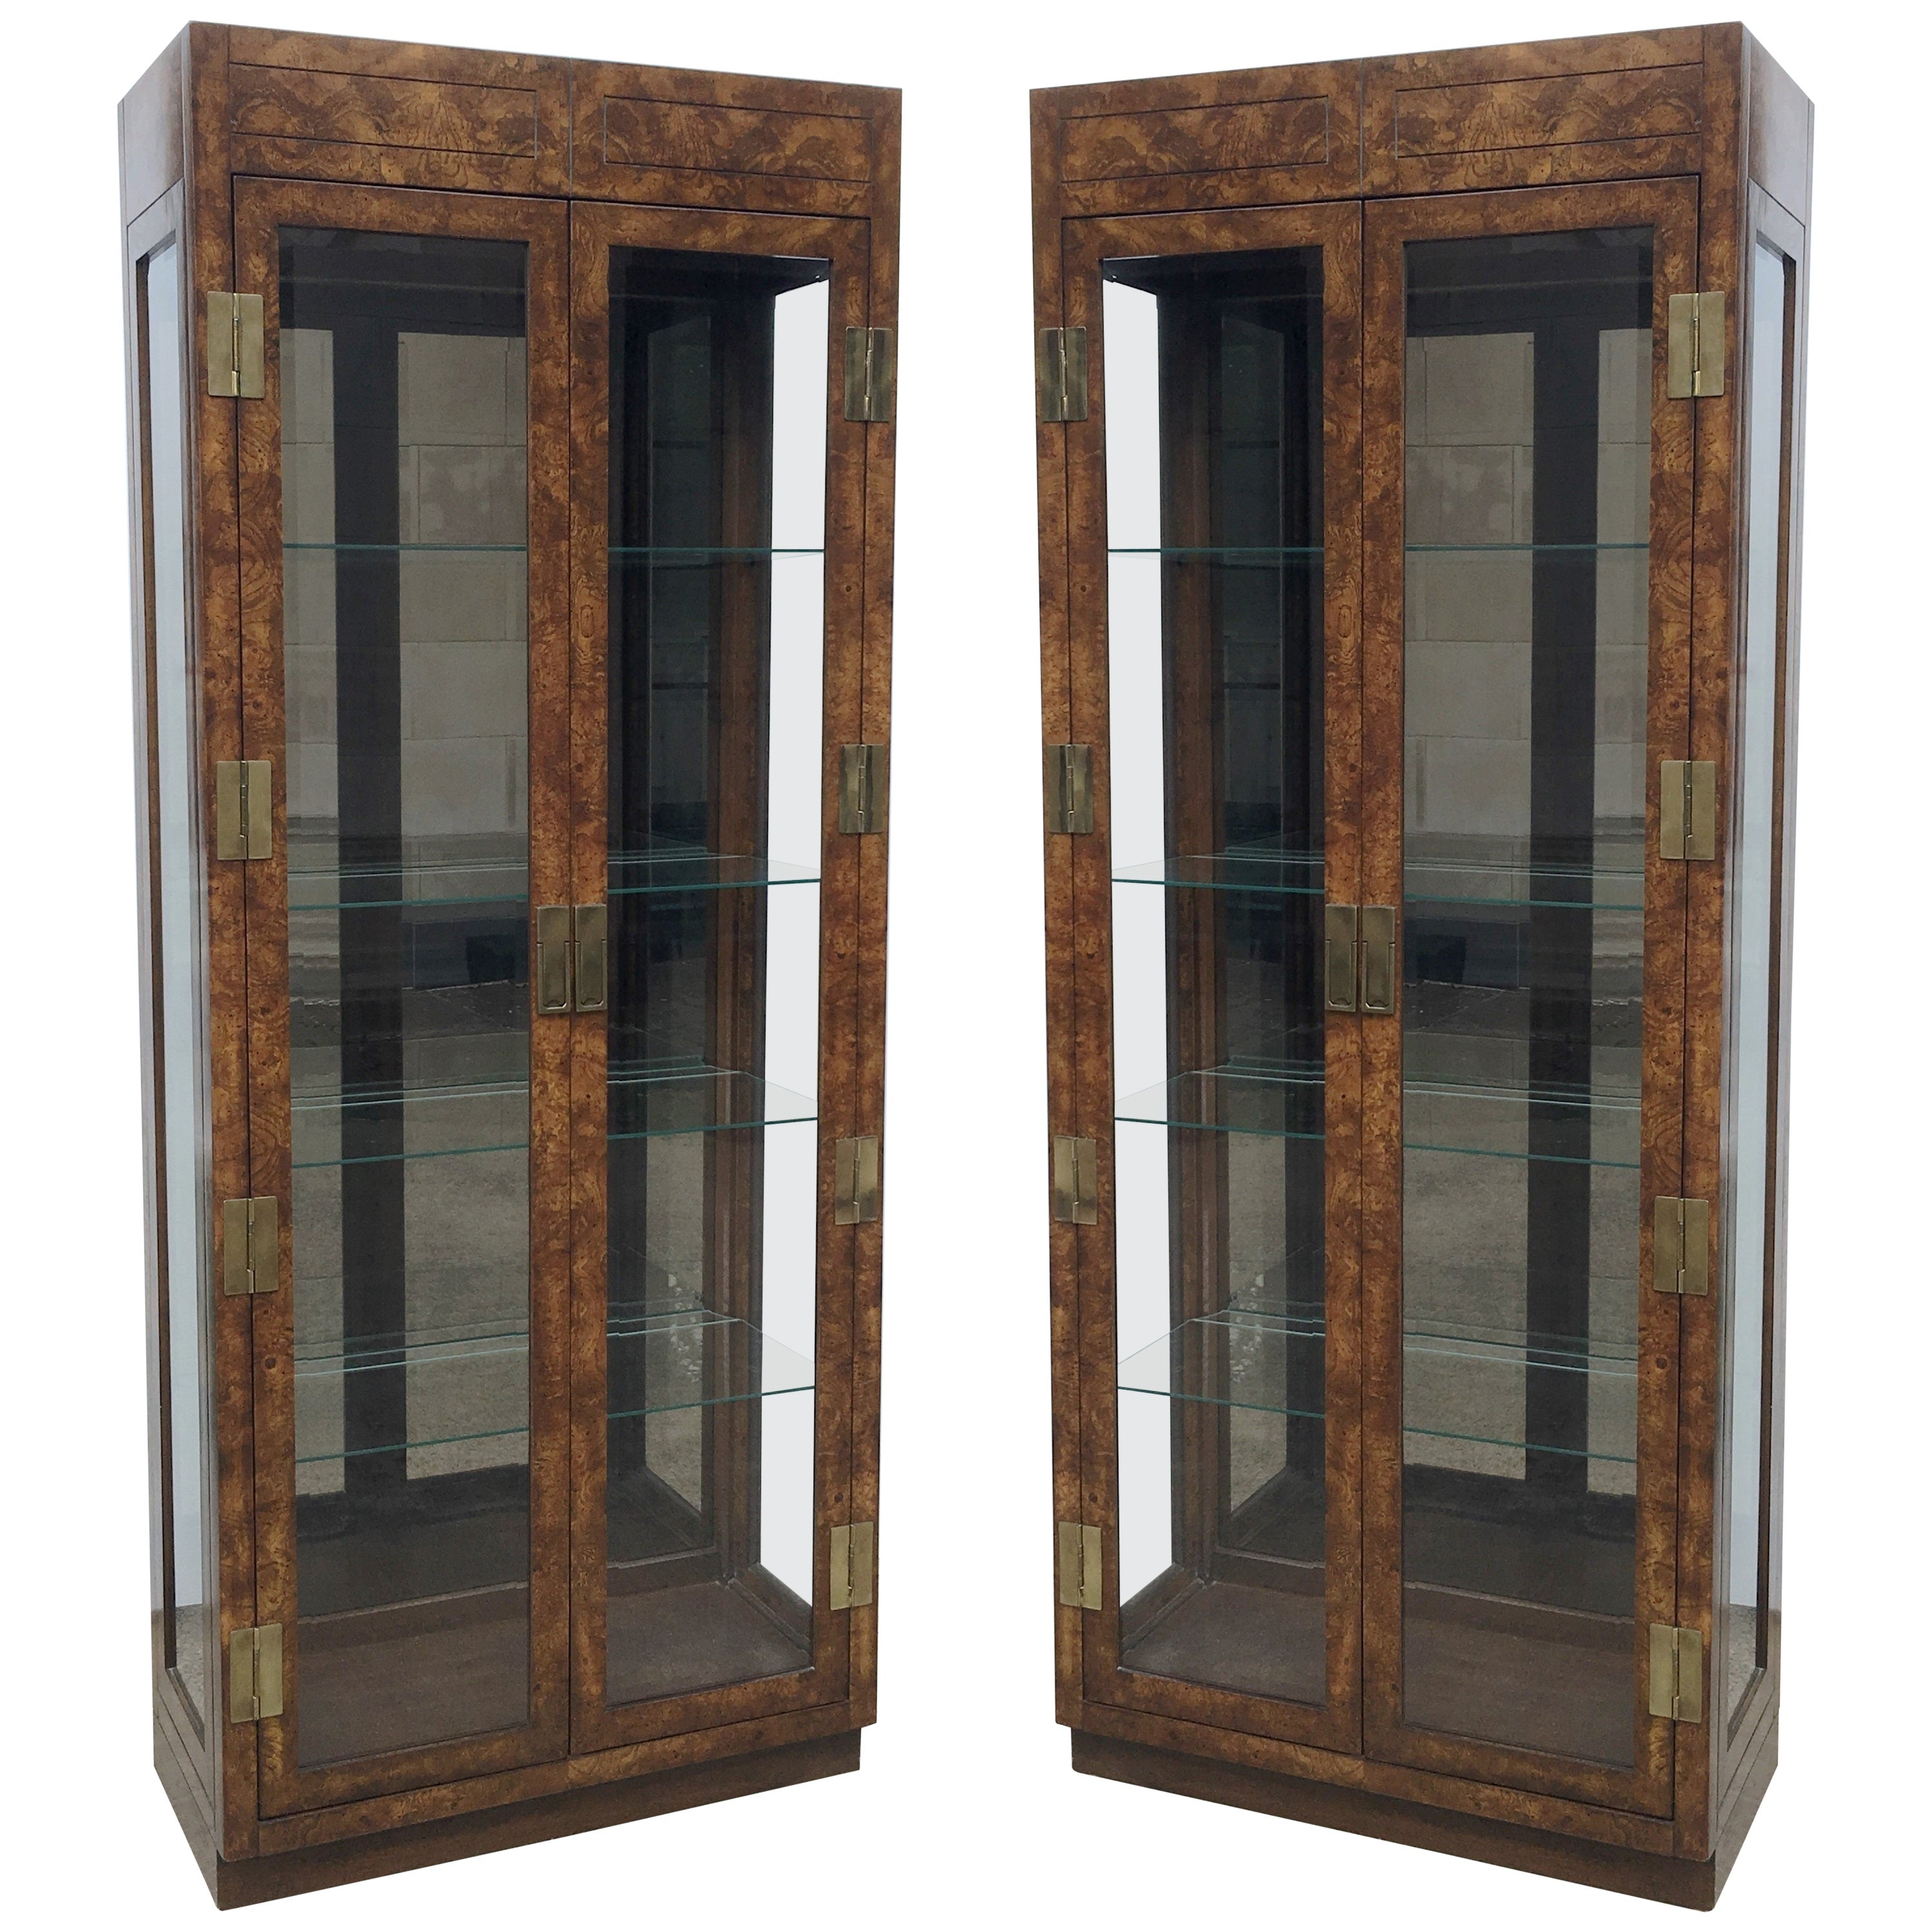 Vintage Burled Walnut Wood and Brass Vitrine or Display Cabinets